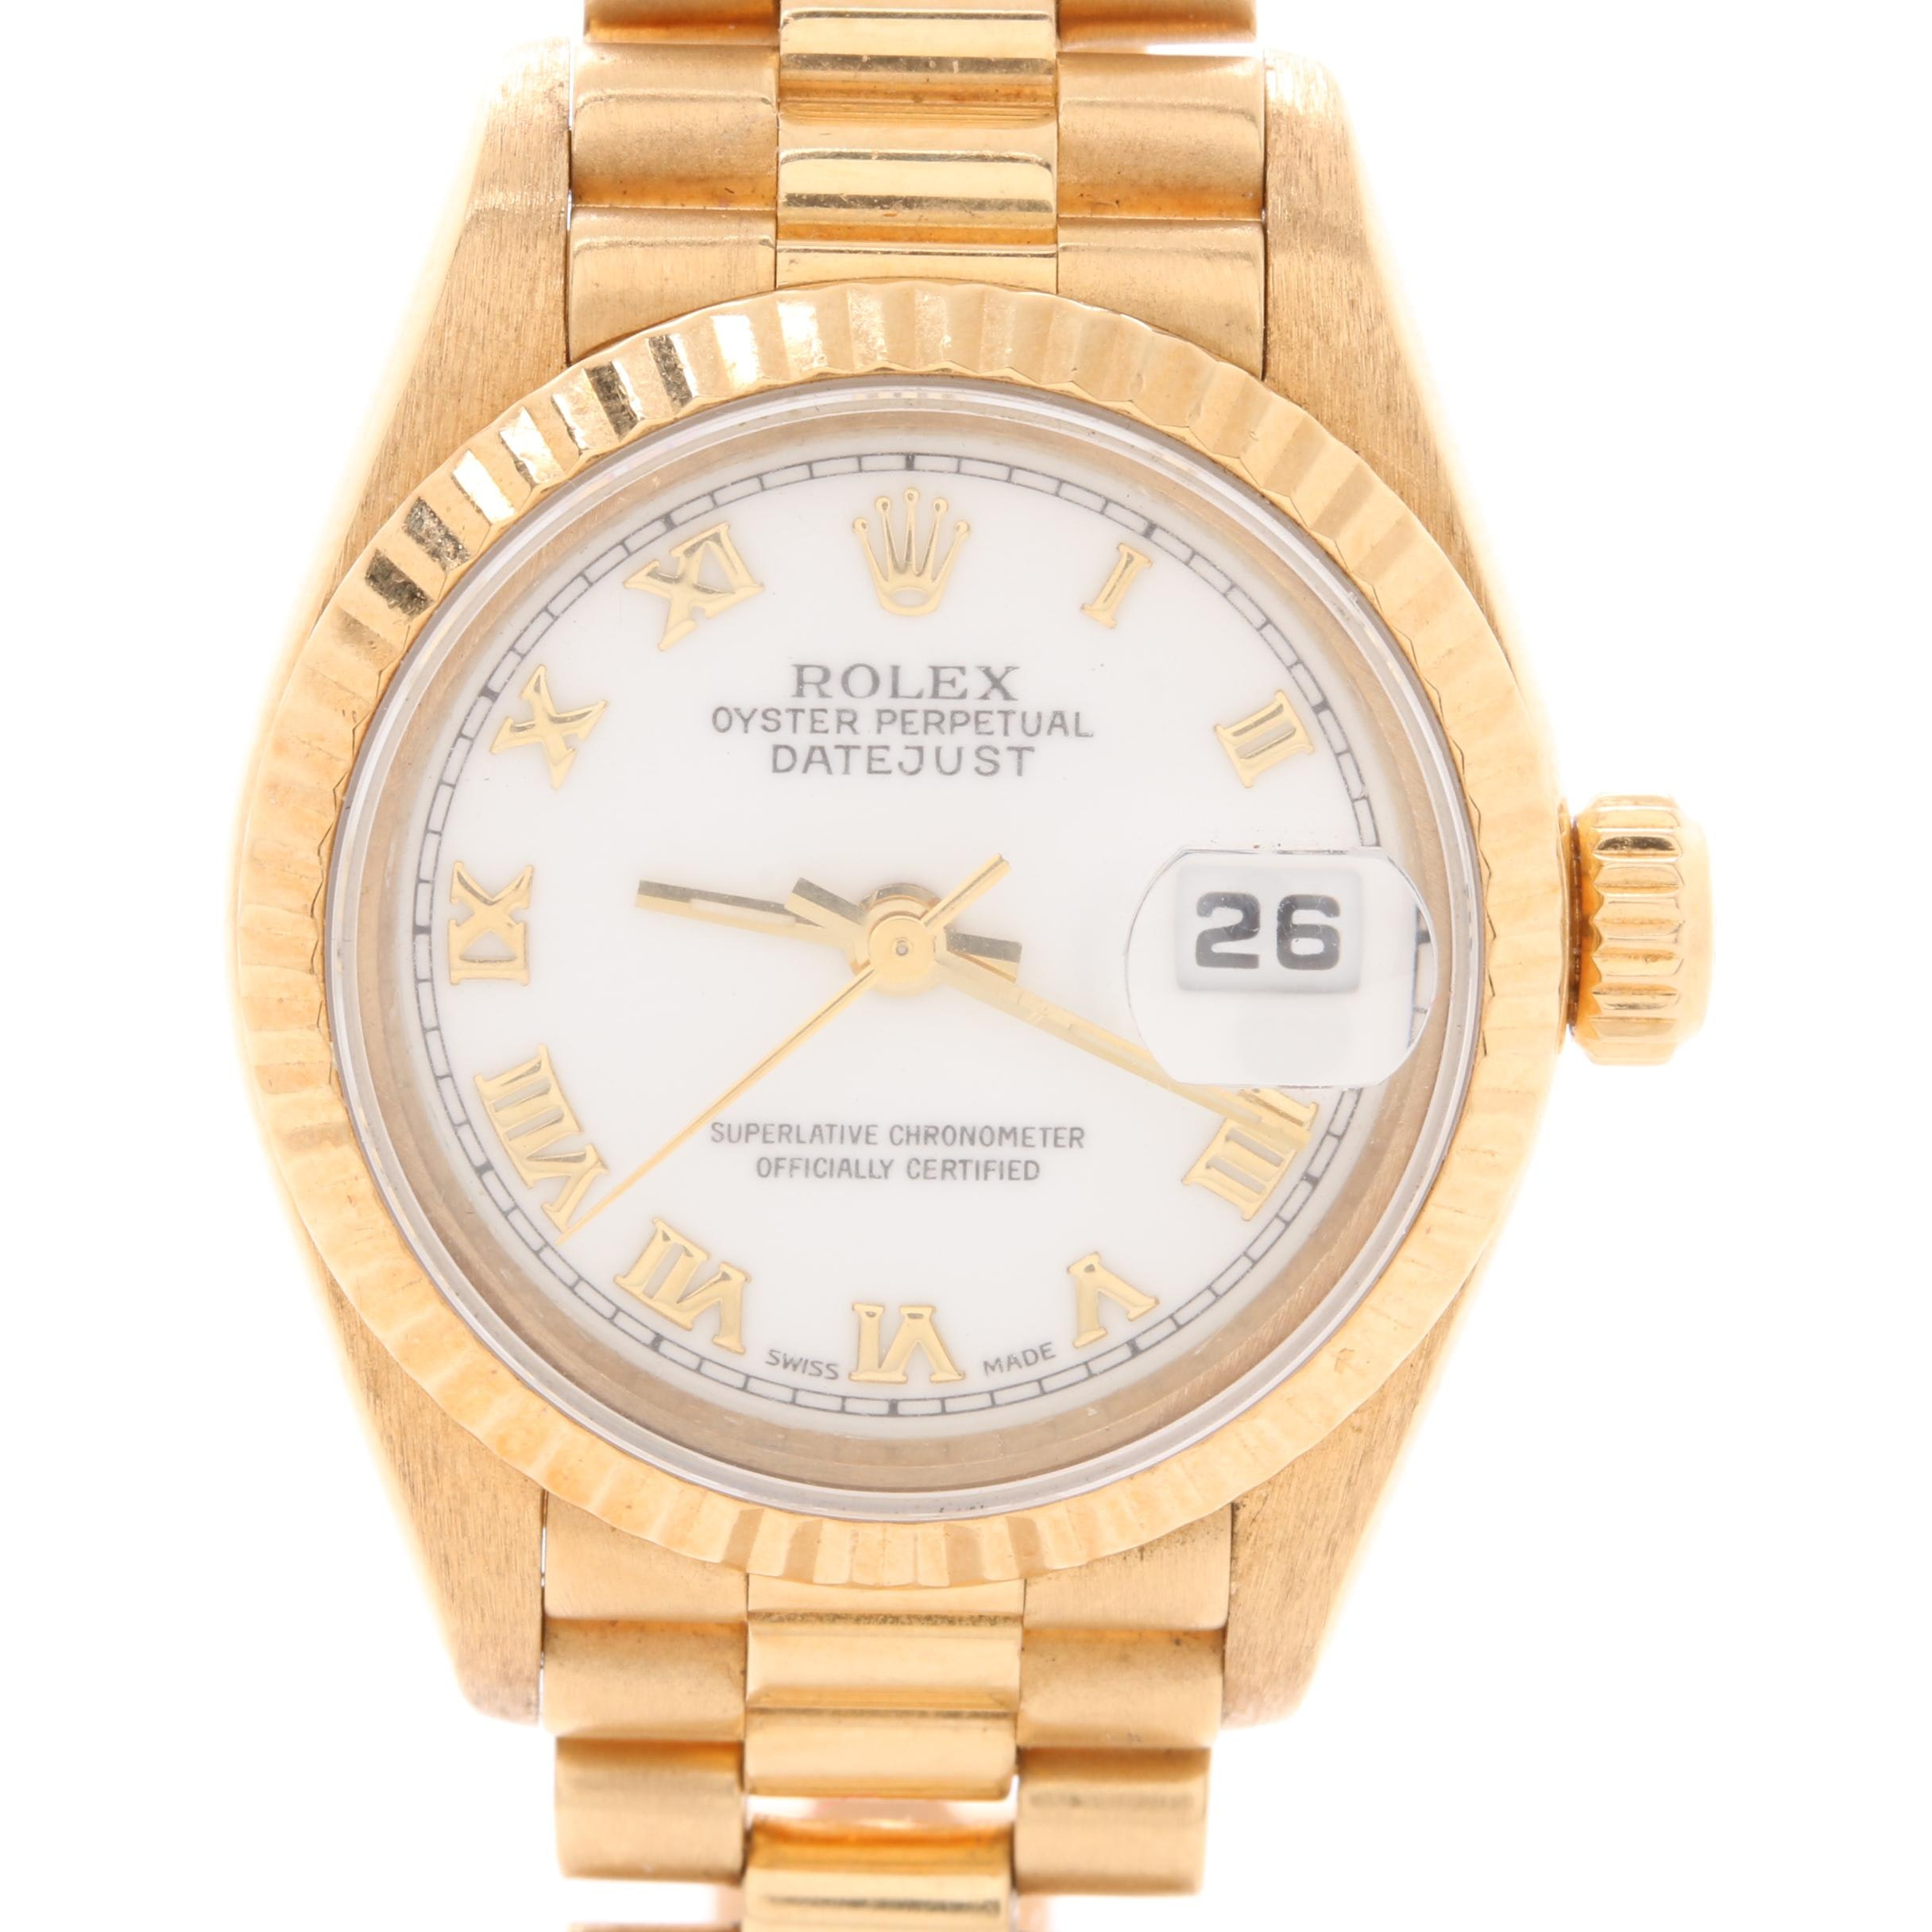 Circa 1999 Rolex Oyster Perpetual Datejust 18K Yellow Gold Wristwatch